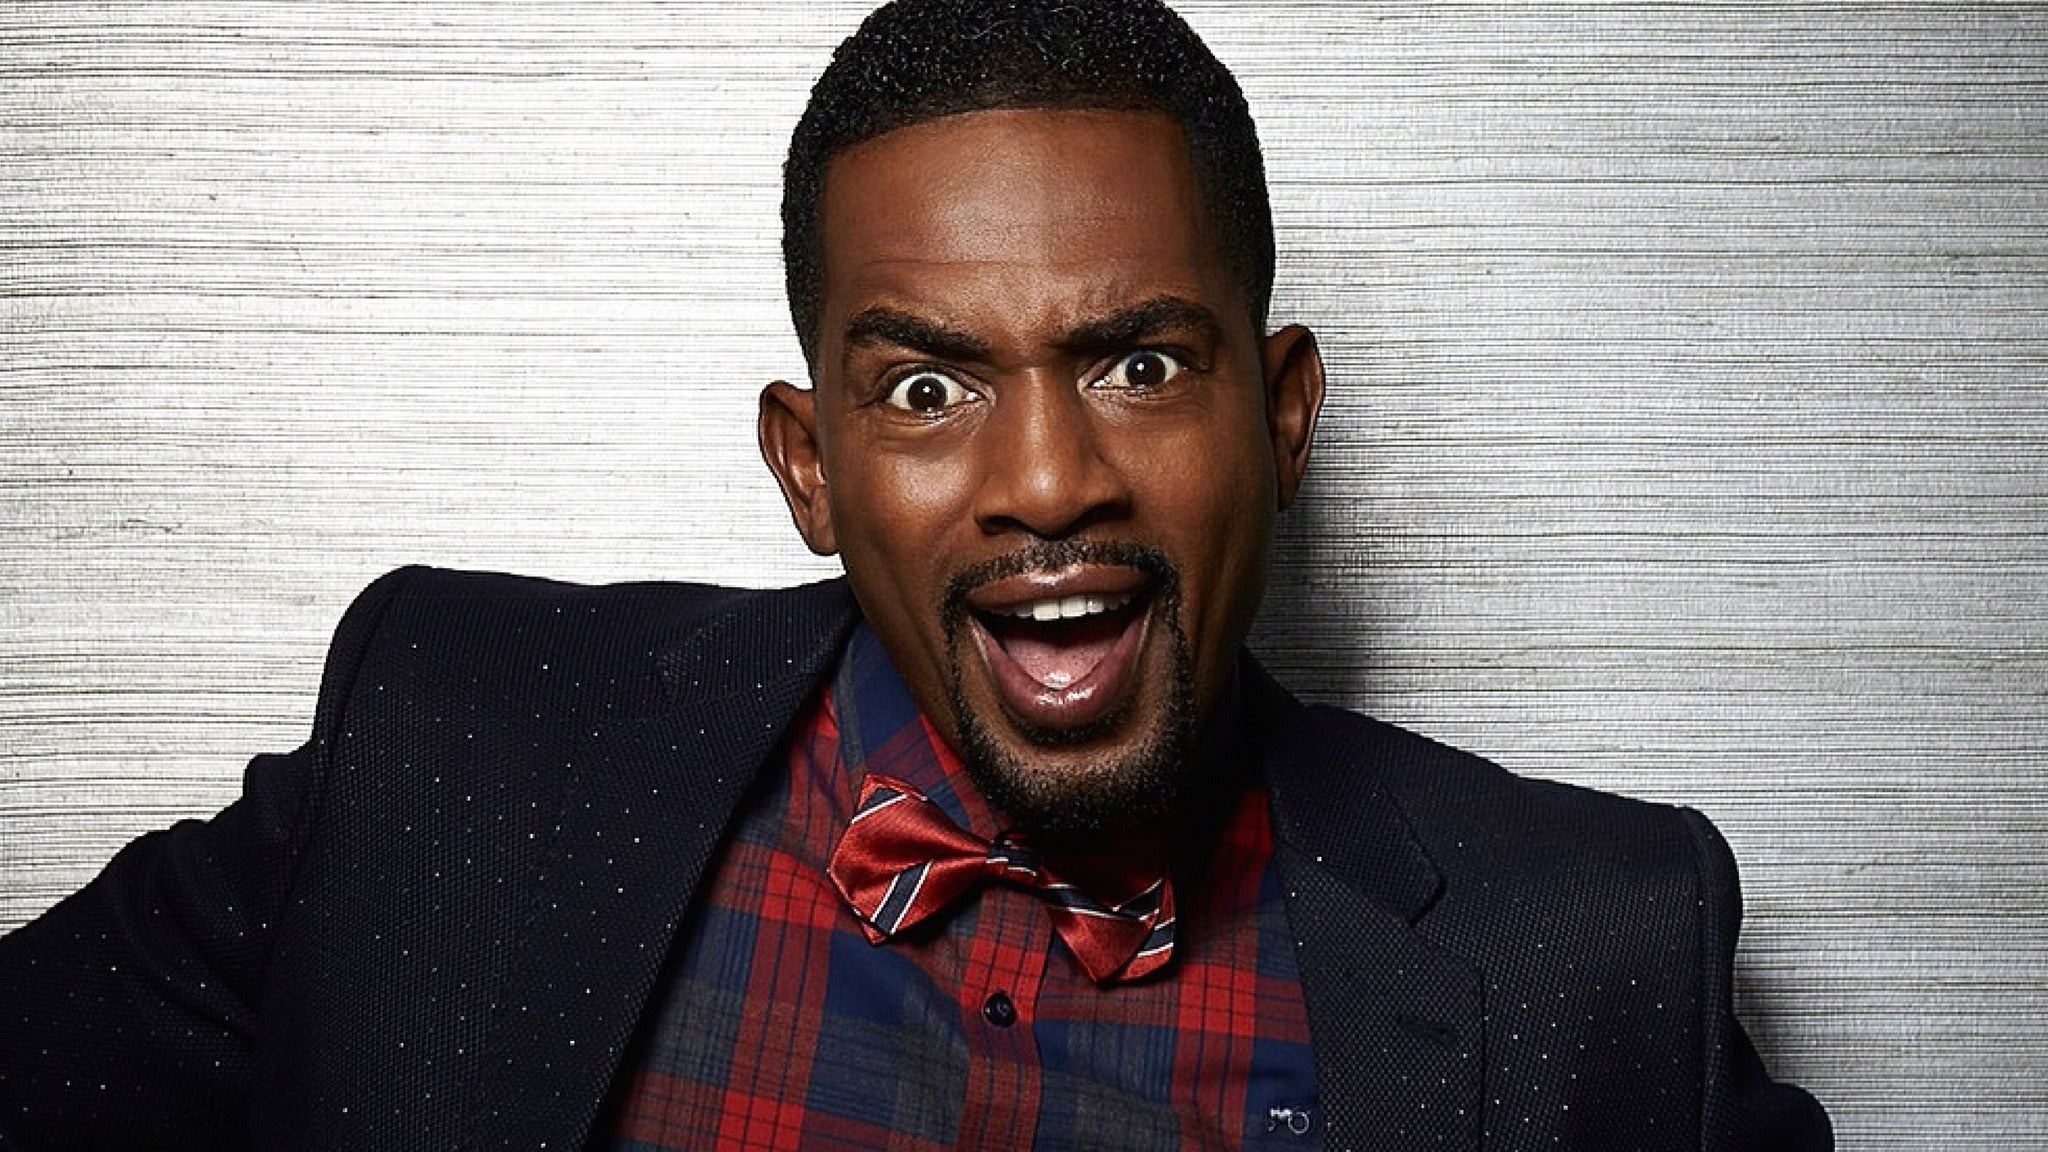 SORRY, THIS EVENT IS NO LONGER ACTIVE<br>Bill Bellamy at Chicago Improv - Schaumburg, IL 60173